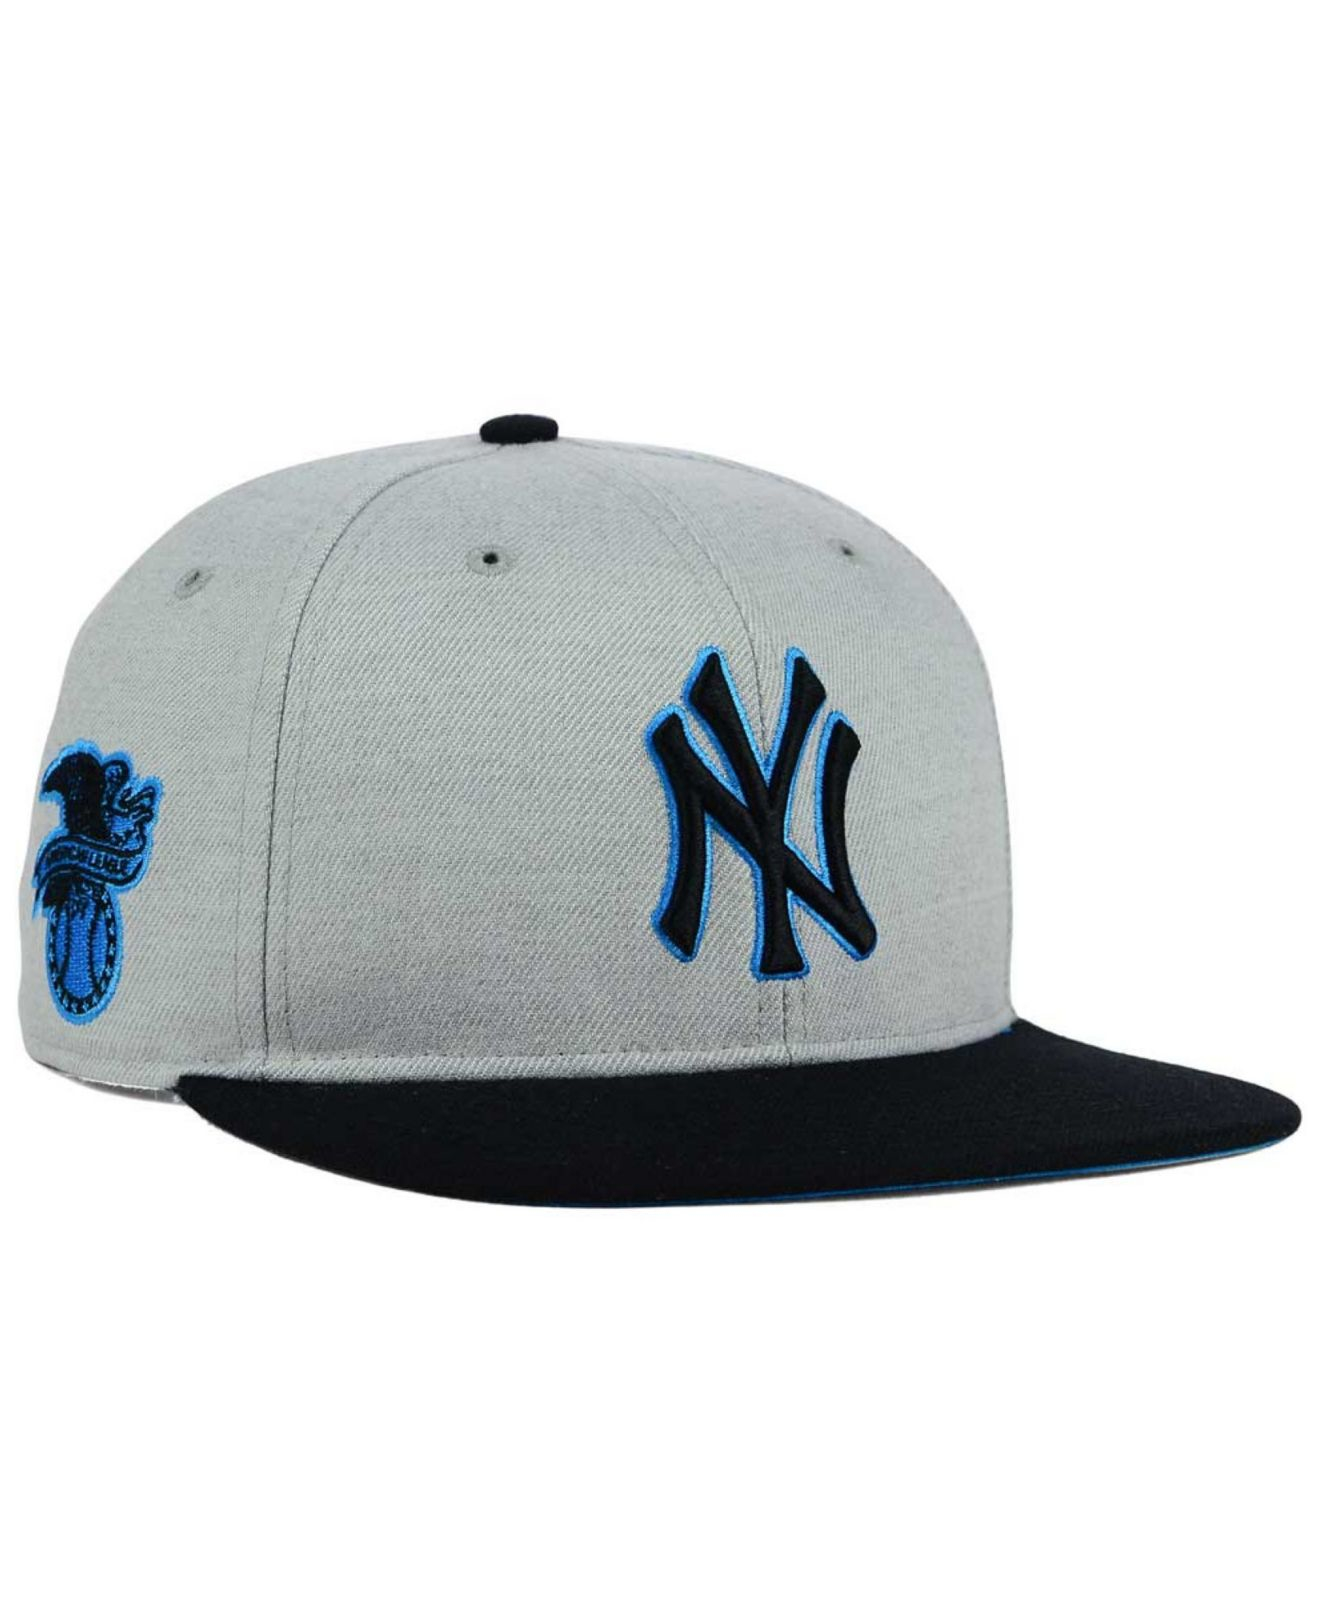 03ce21d8713 ... canada lyst 47 brand new york yankees wrist shot snapback cap in gray  for men 5a075